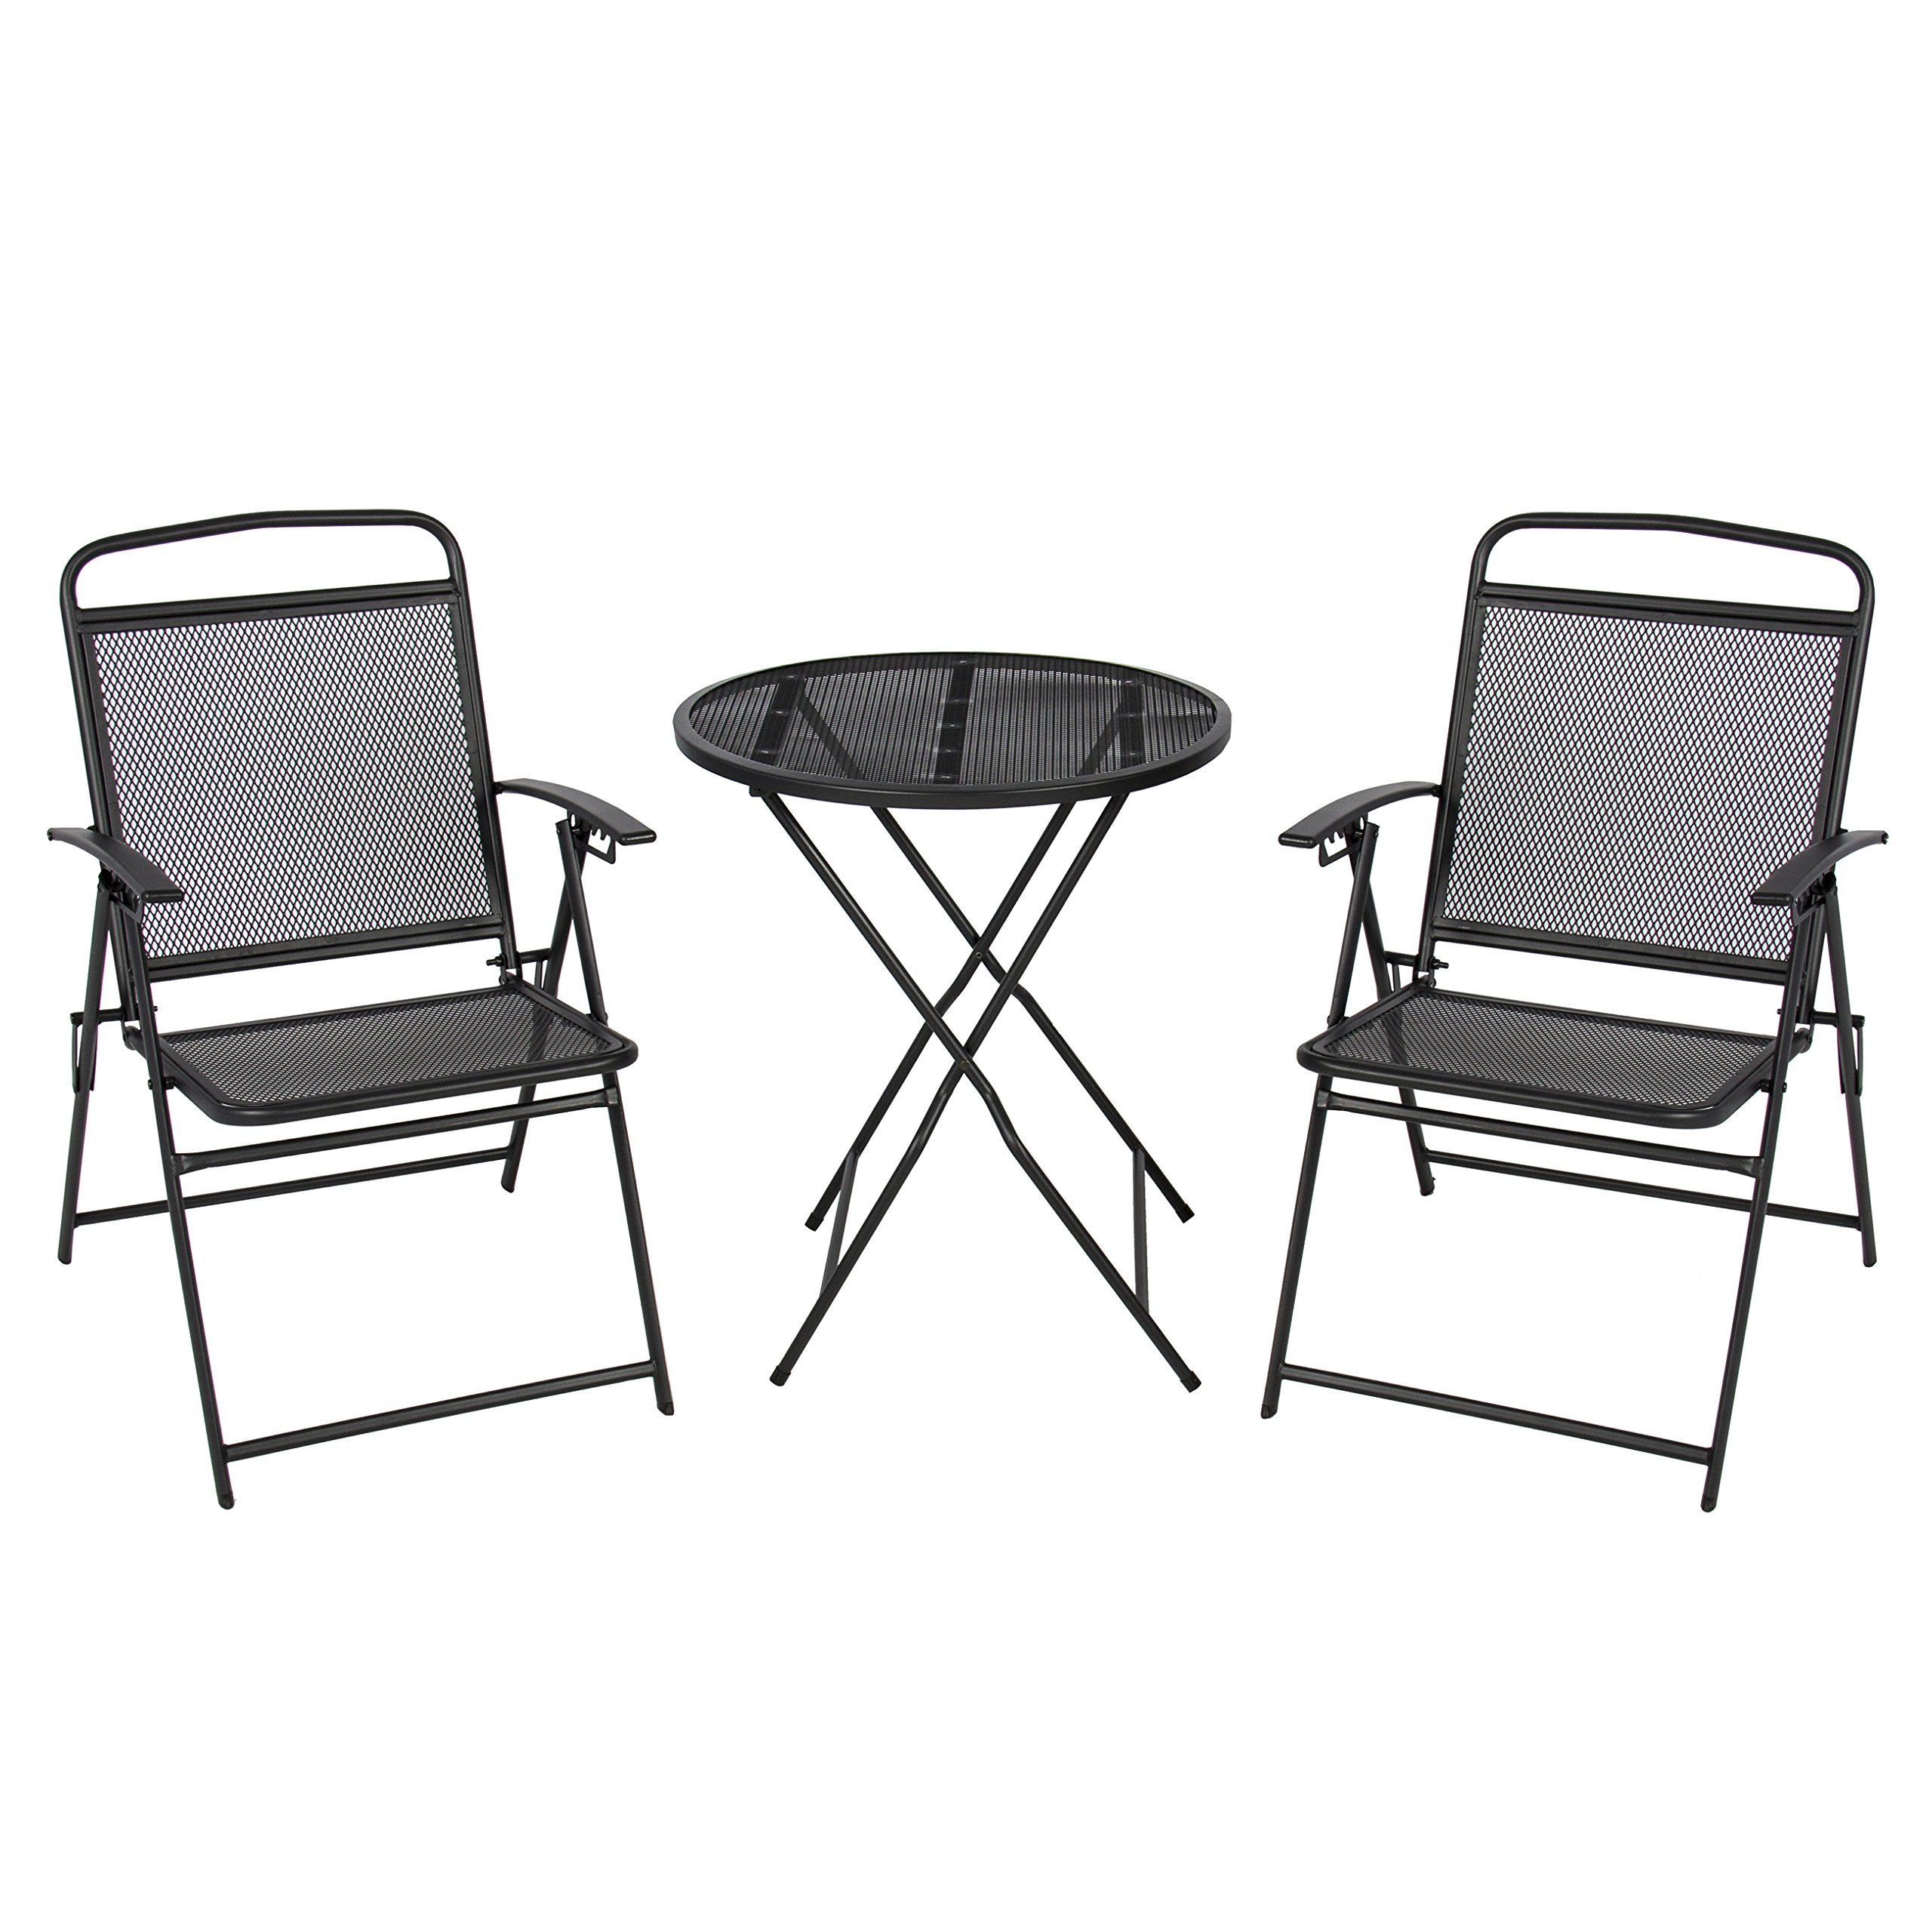 Best Choice Products 3-Piece Adjustable Foldable Compact Outdoor Bistro Set w/Reclining Chairs - Black